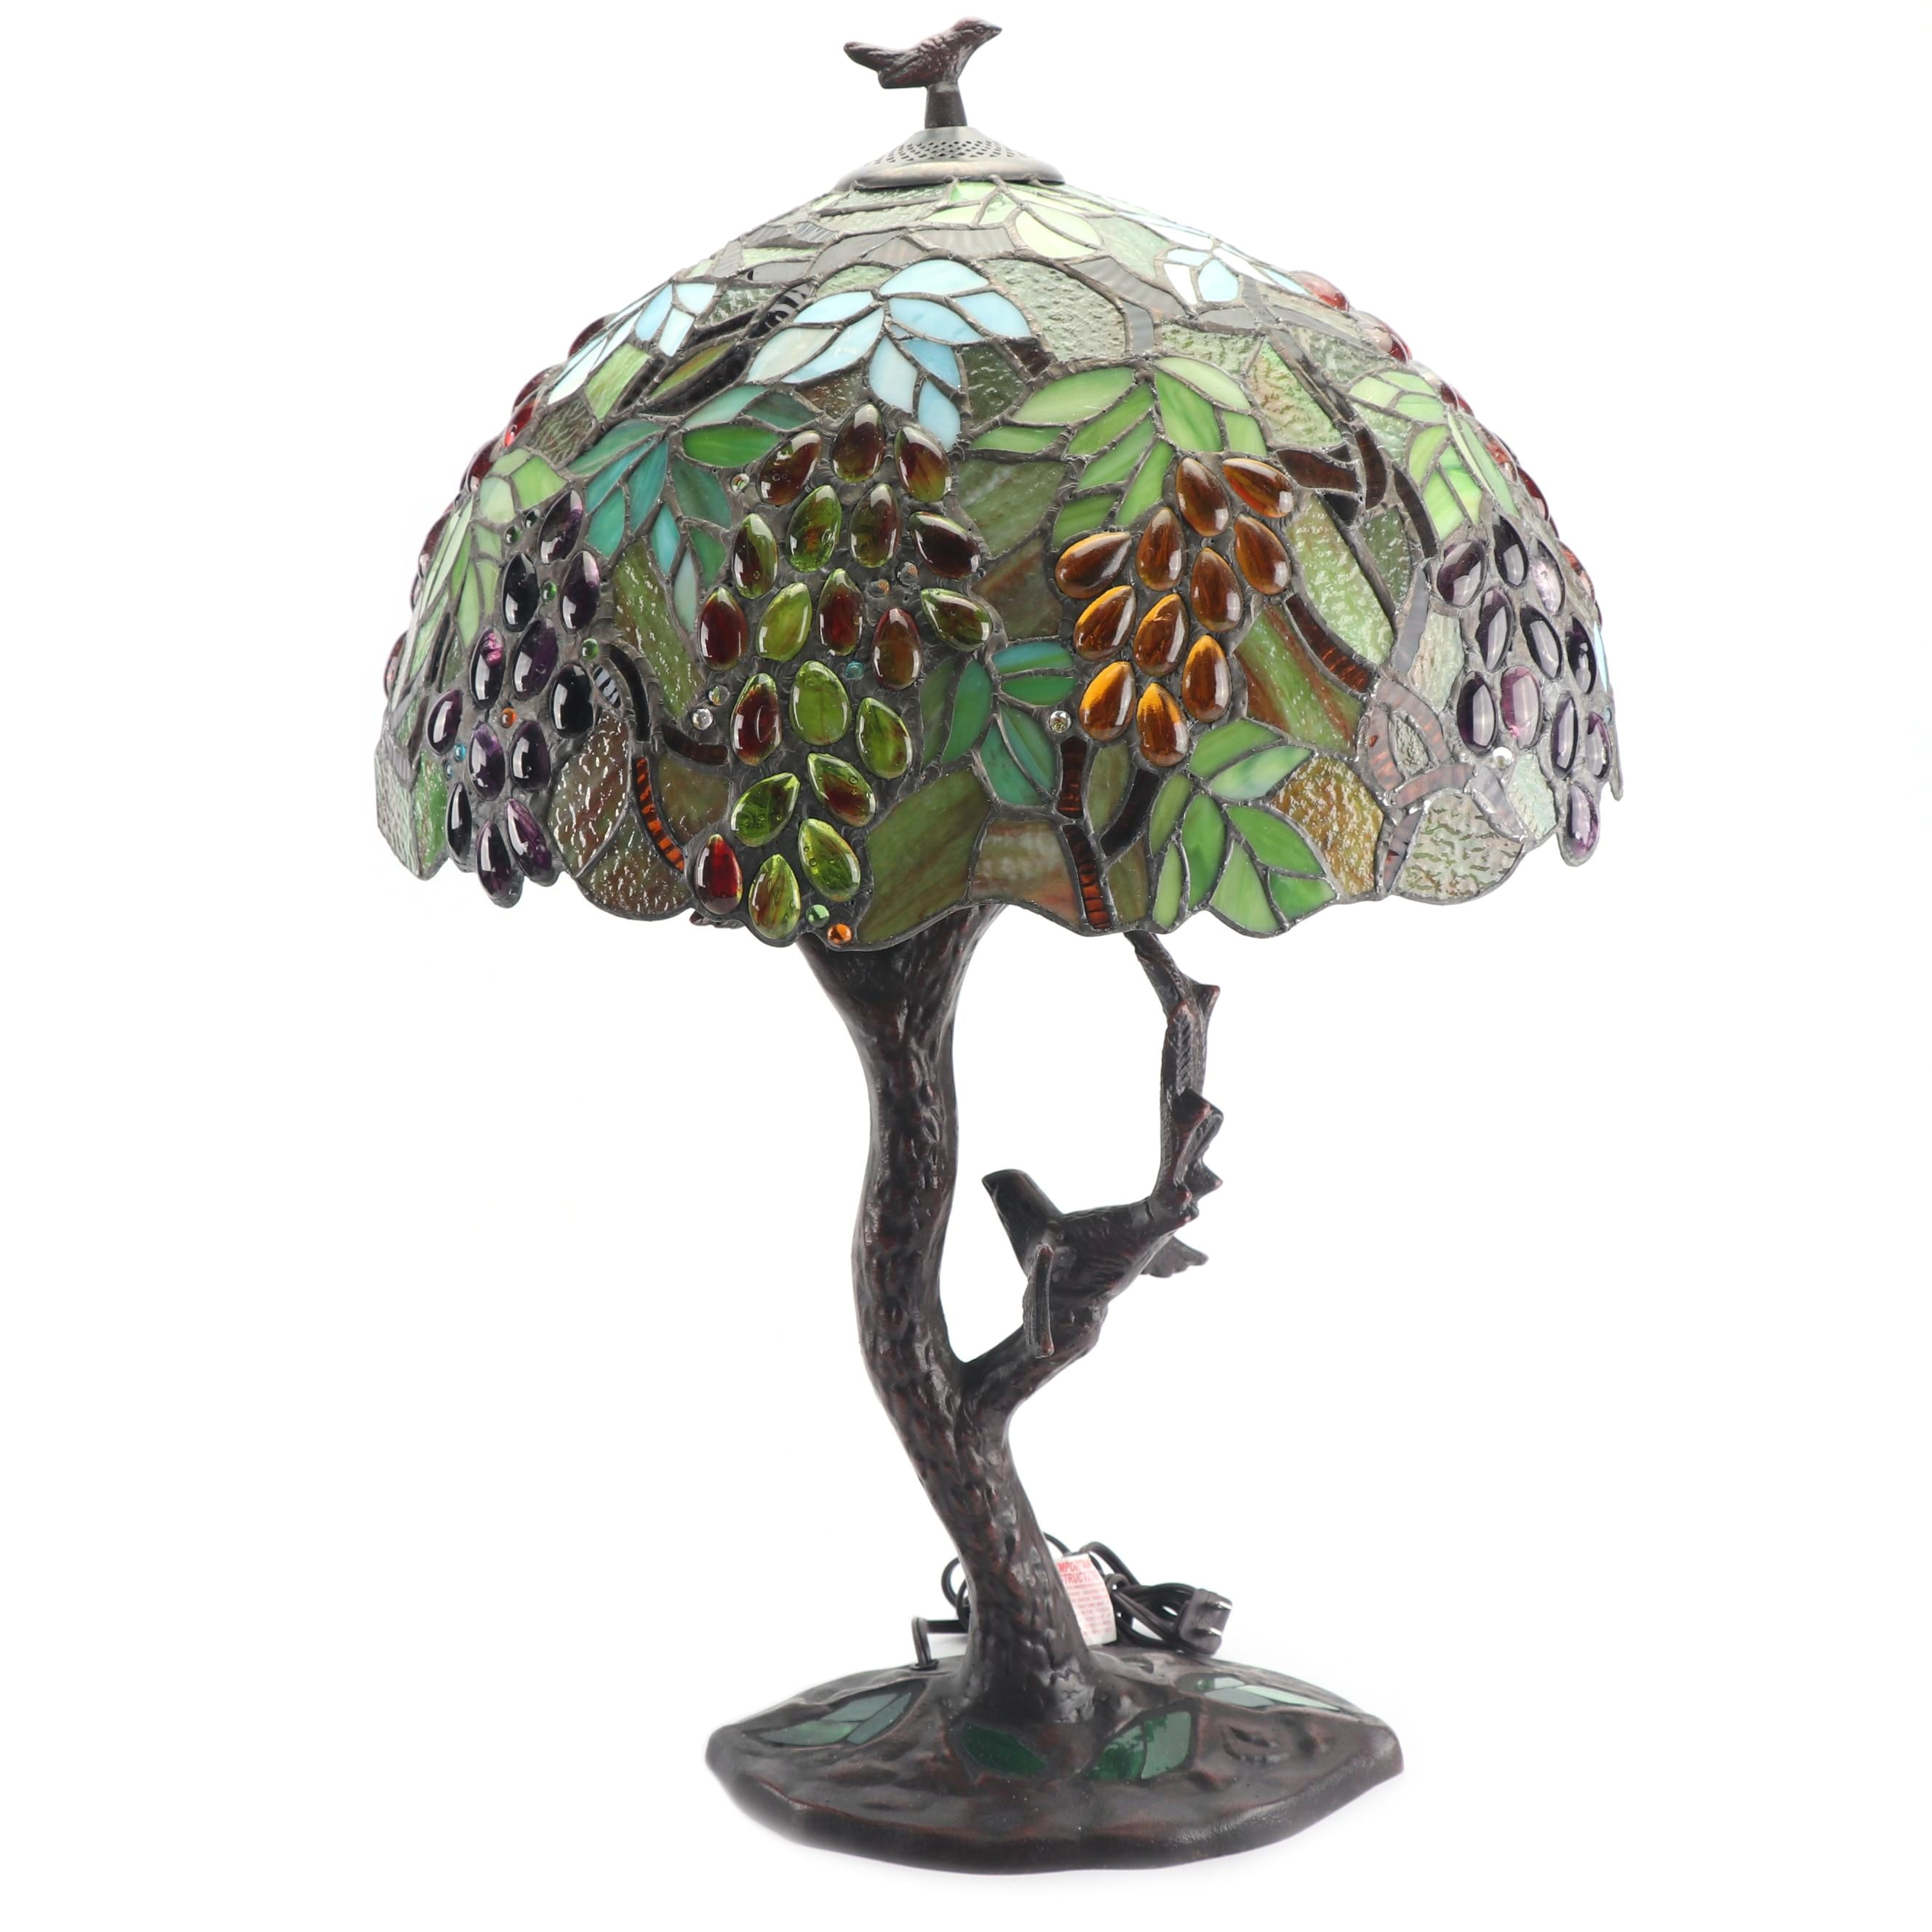 Stained and Slag Glass Lamp with Bird Finial